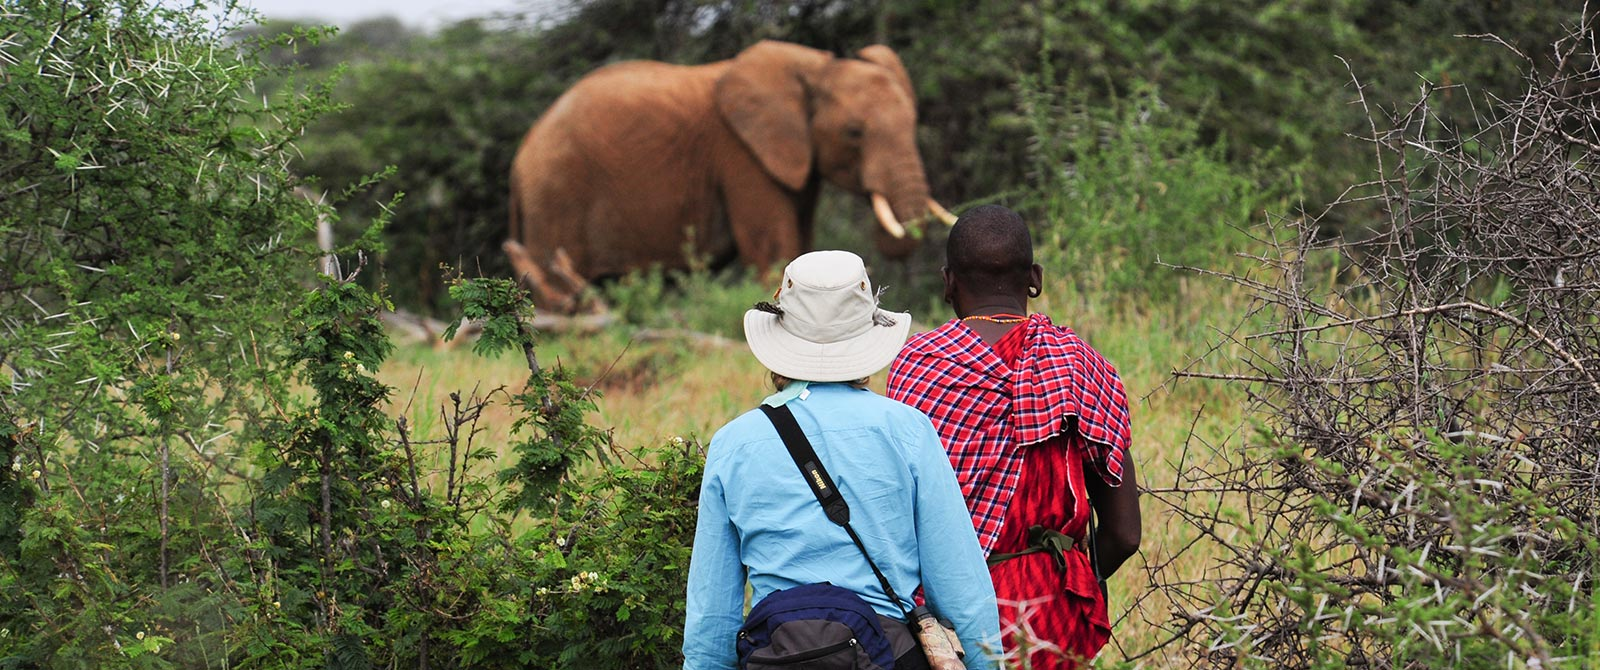 Elephant Spotted on Karisia Walking Safaris - Kenya Walking Safari: A Walk in the Wild Travel Package